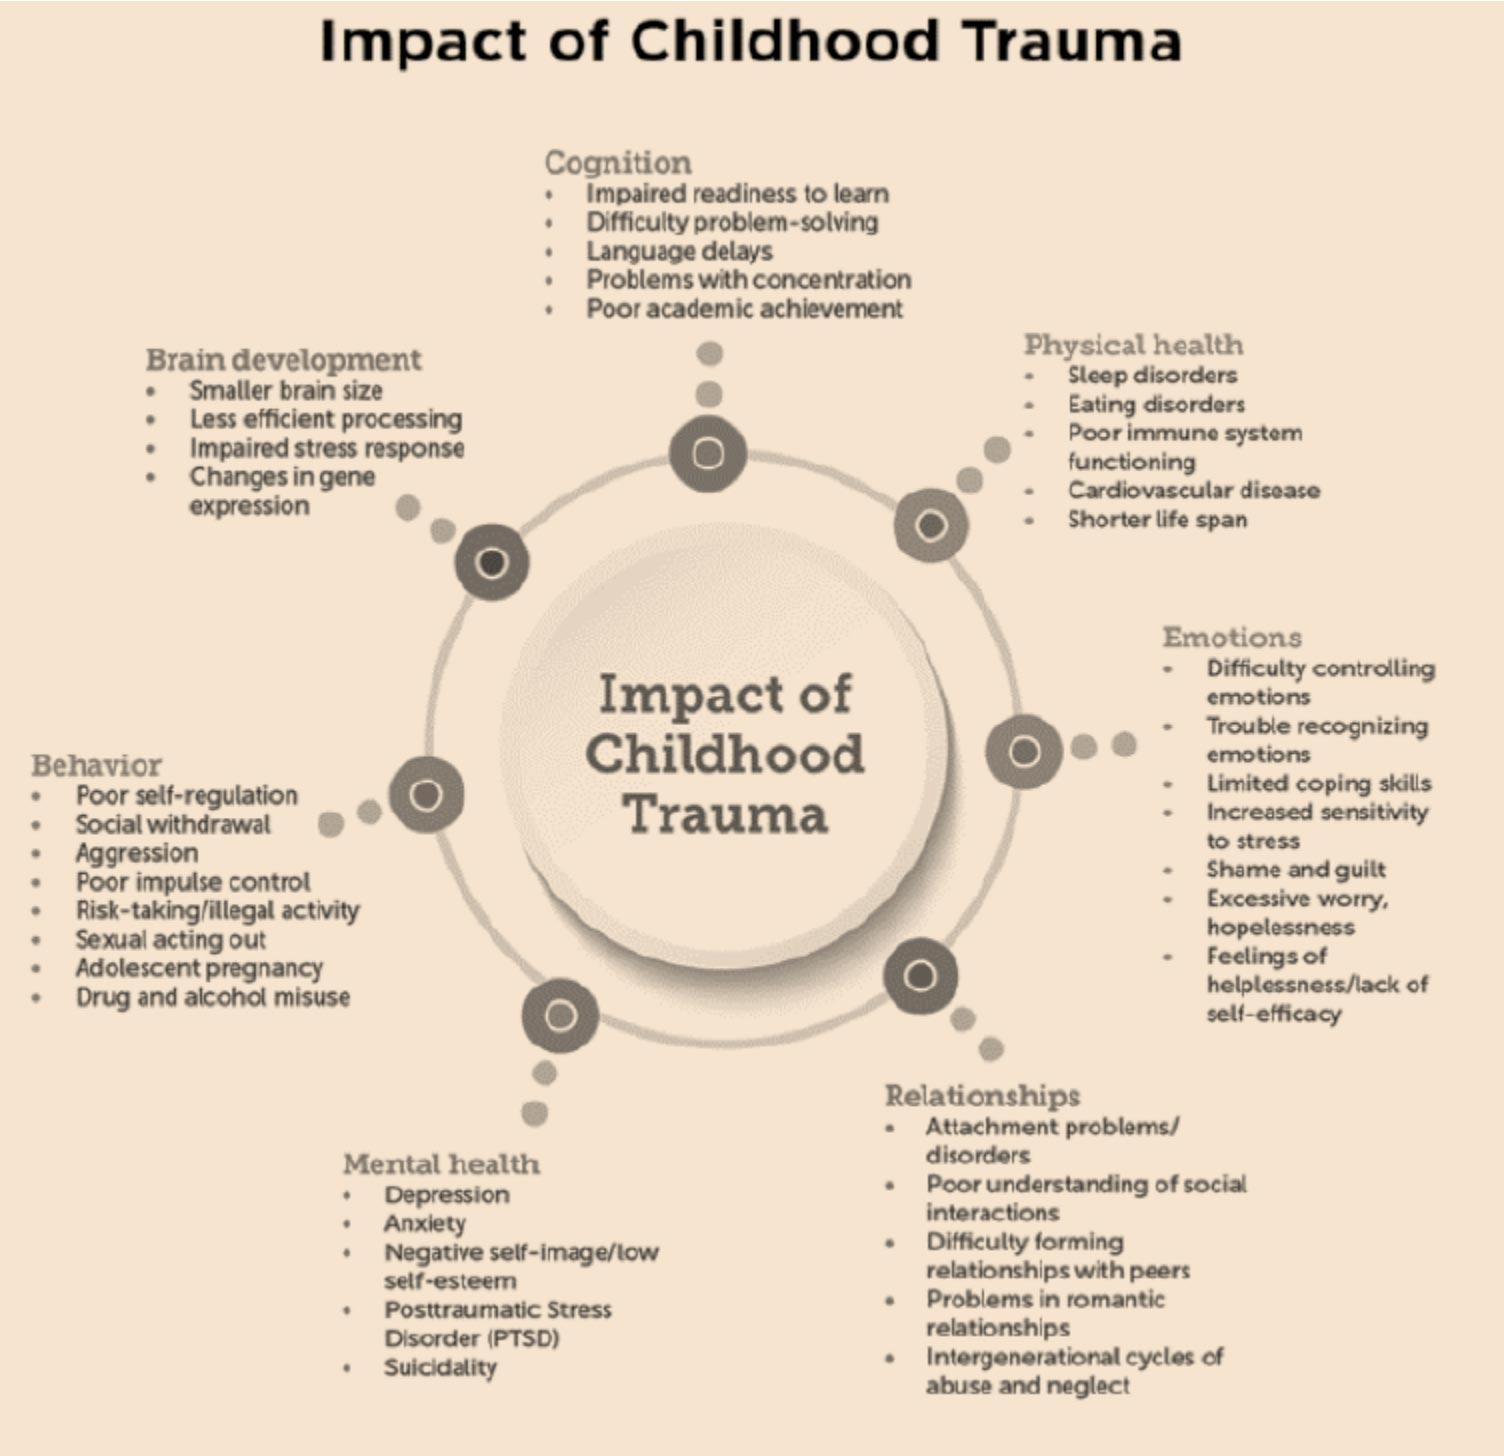 Picture credit: https://www.childtrends.org/publications/how-to-implement-trauma-informed-care-to-build-resilience-to-childhood-trauma